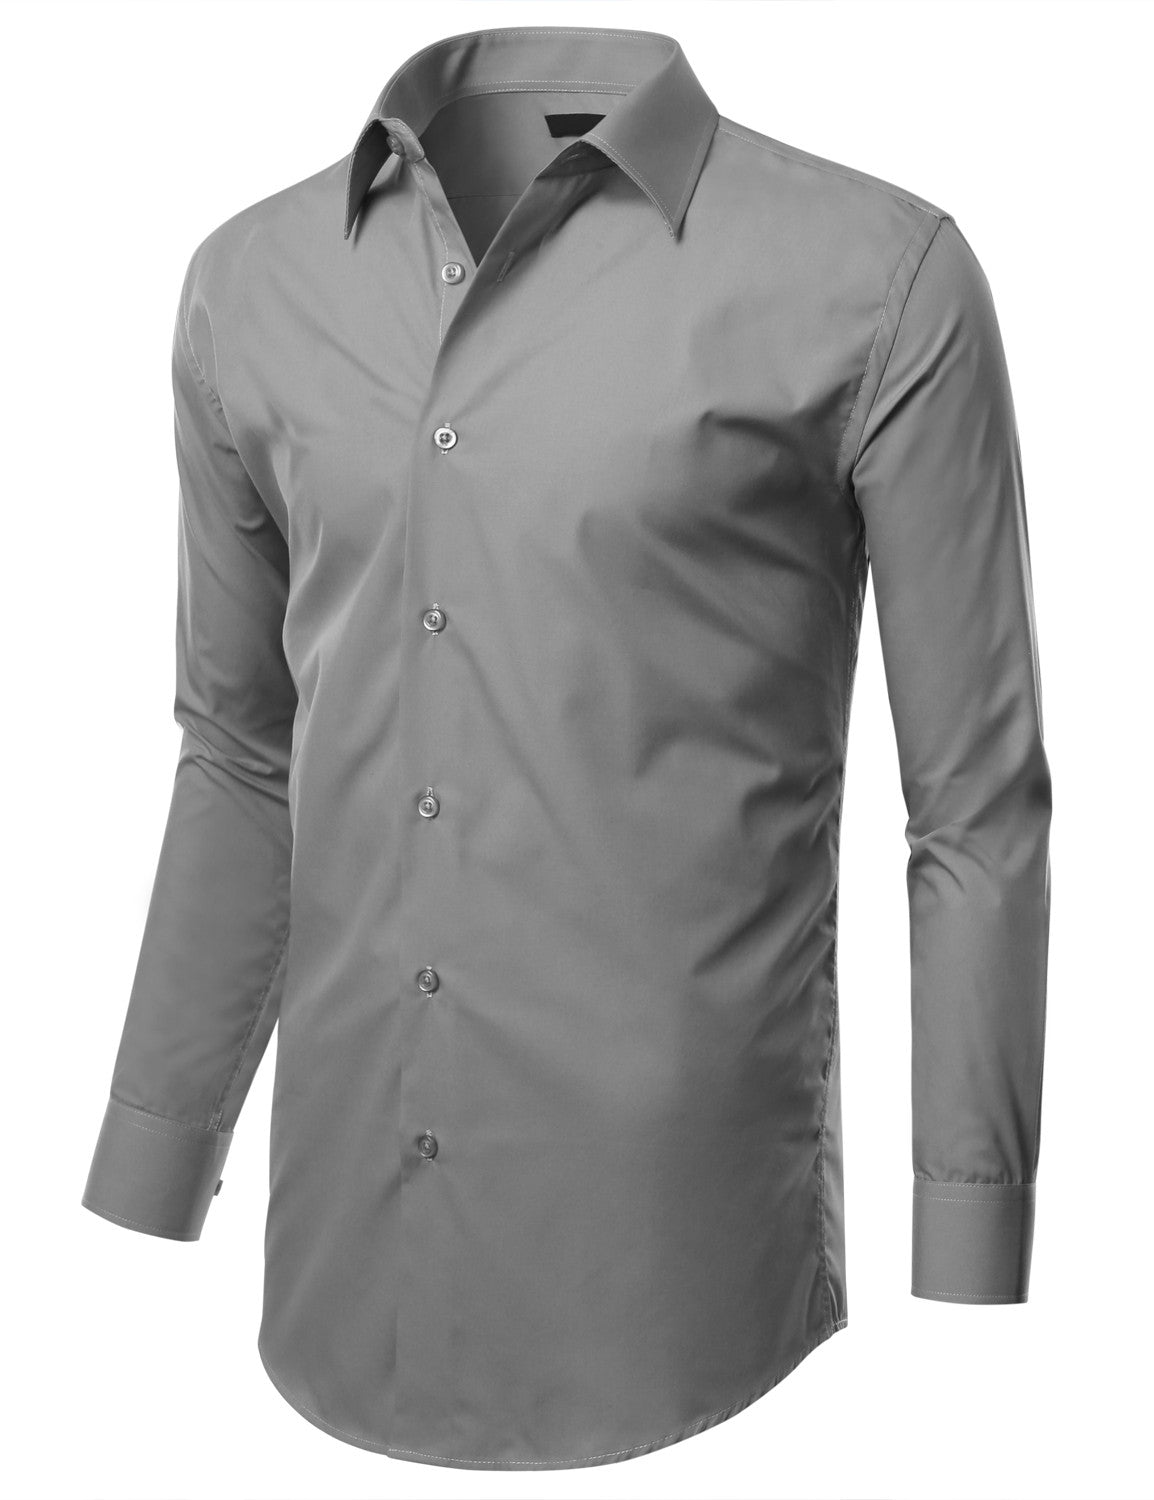 TC29LIGHTGRAY Light Gray Slim Fit Dress Shirt w/ Reversible Cuff (Big & Tall Available)- MONDAYSUIT